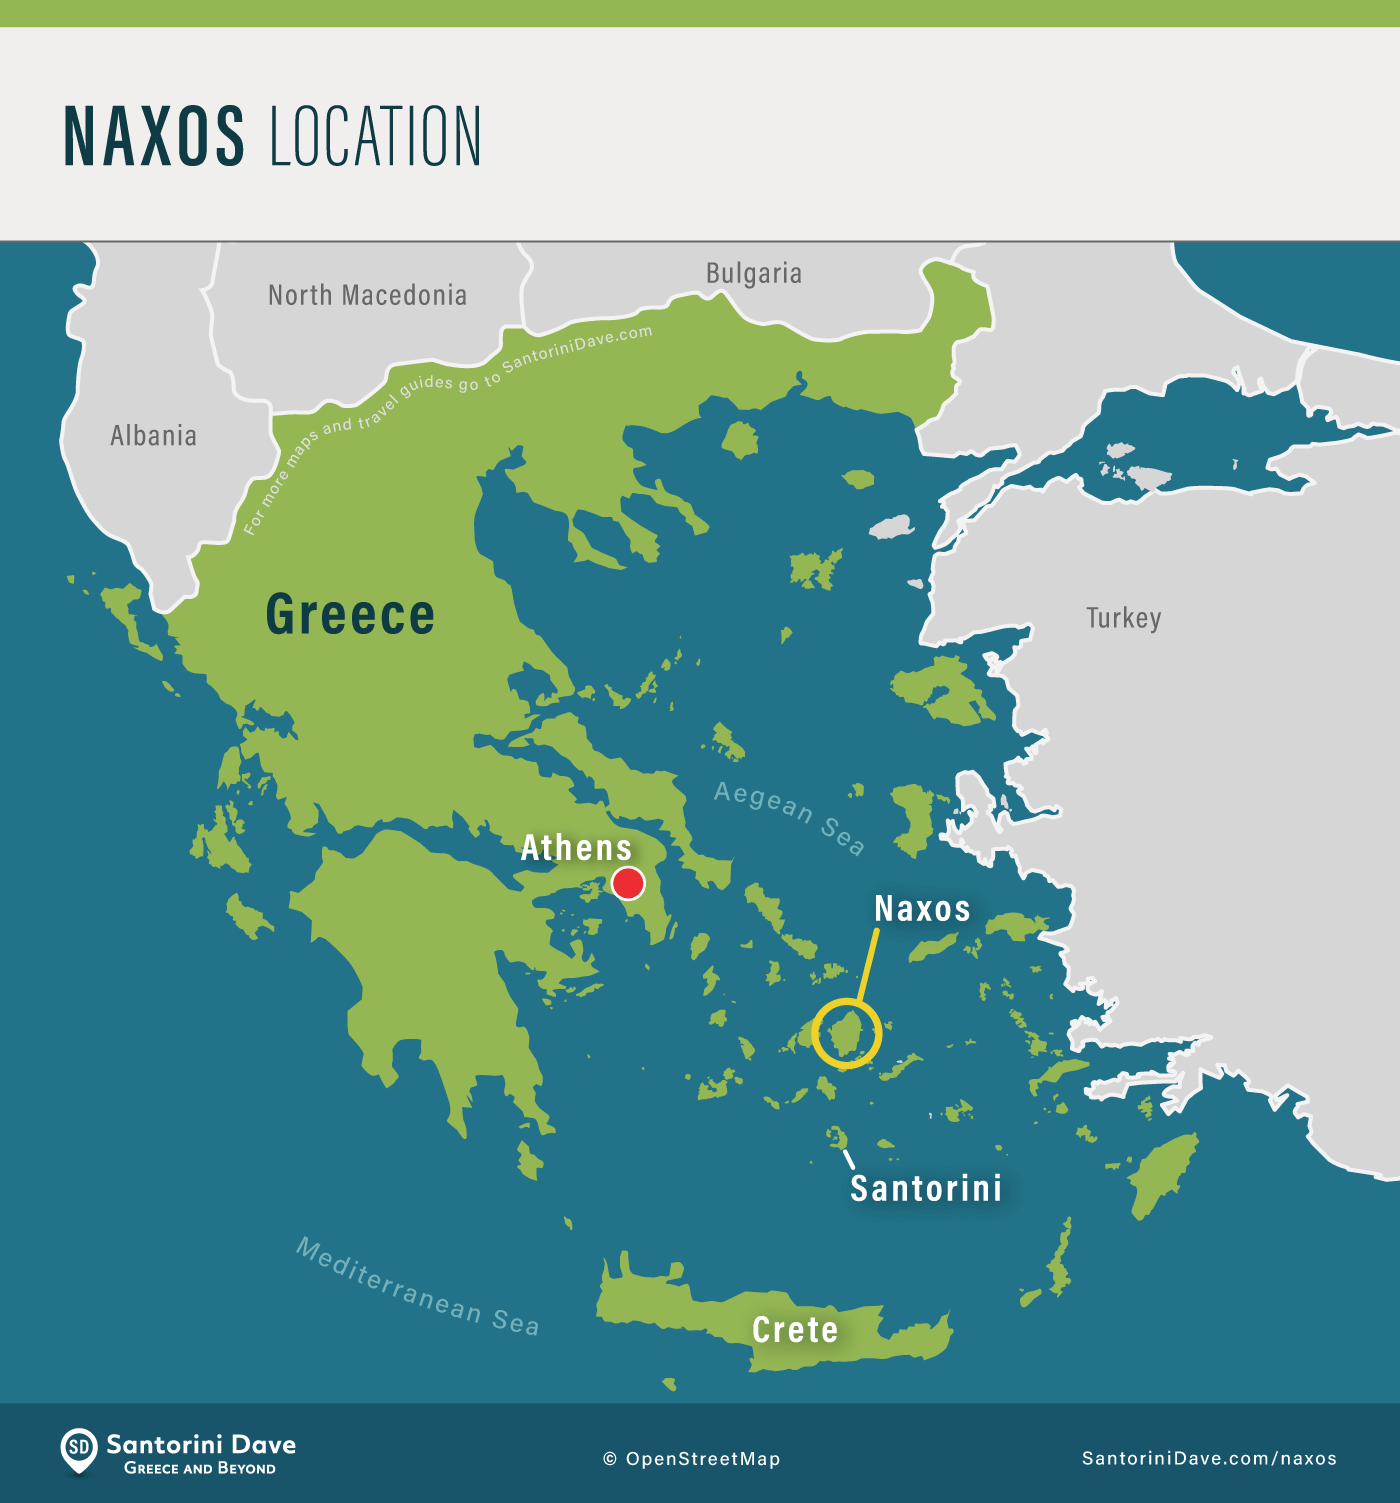 Map showing the location of Naxos Island, in Greece.